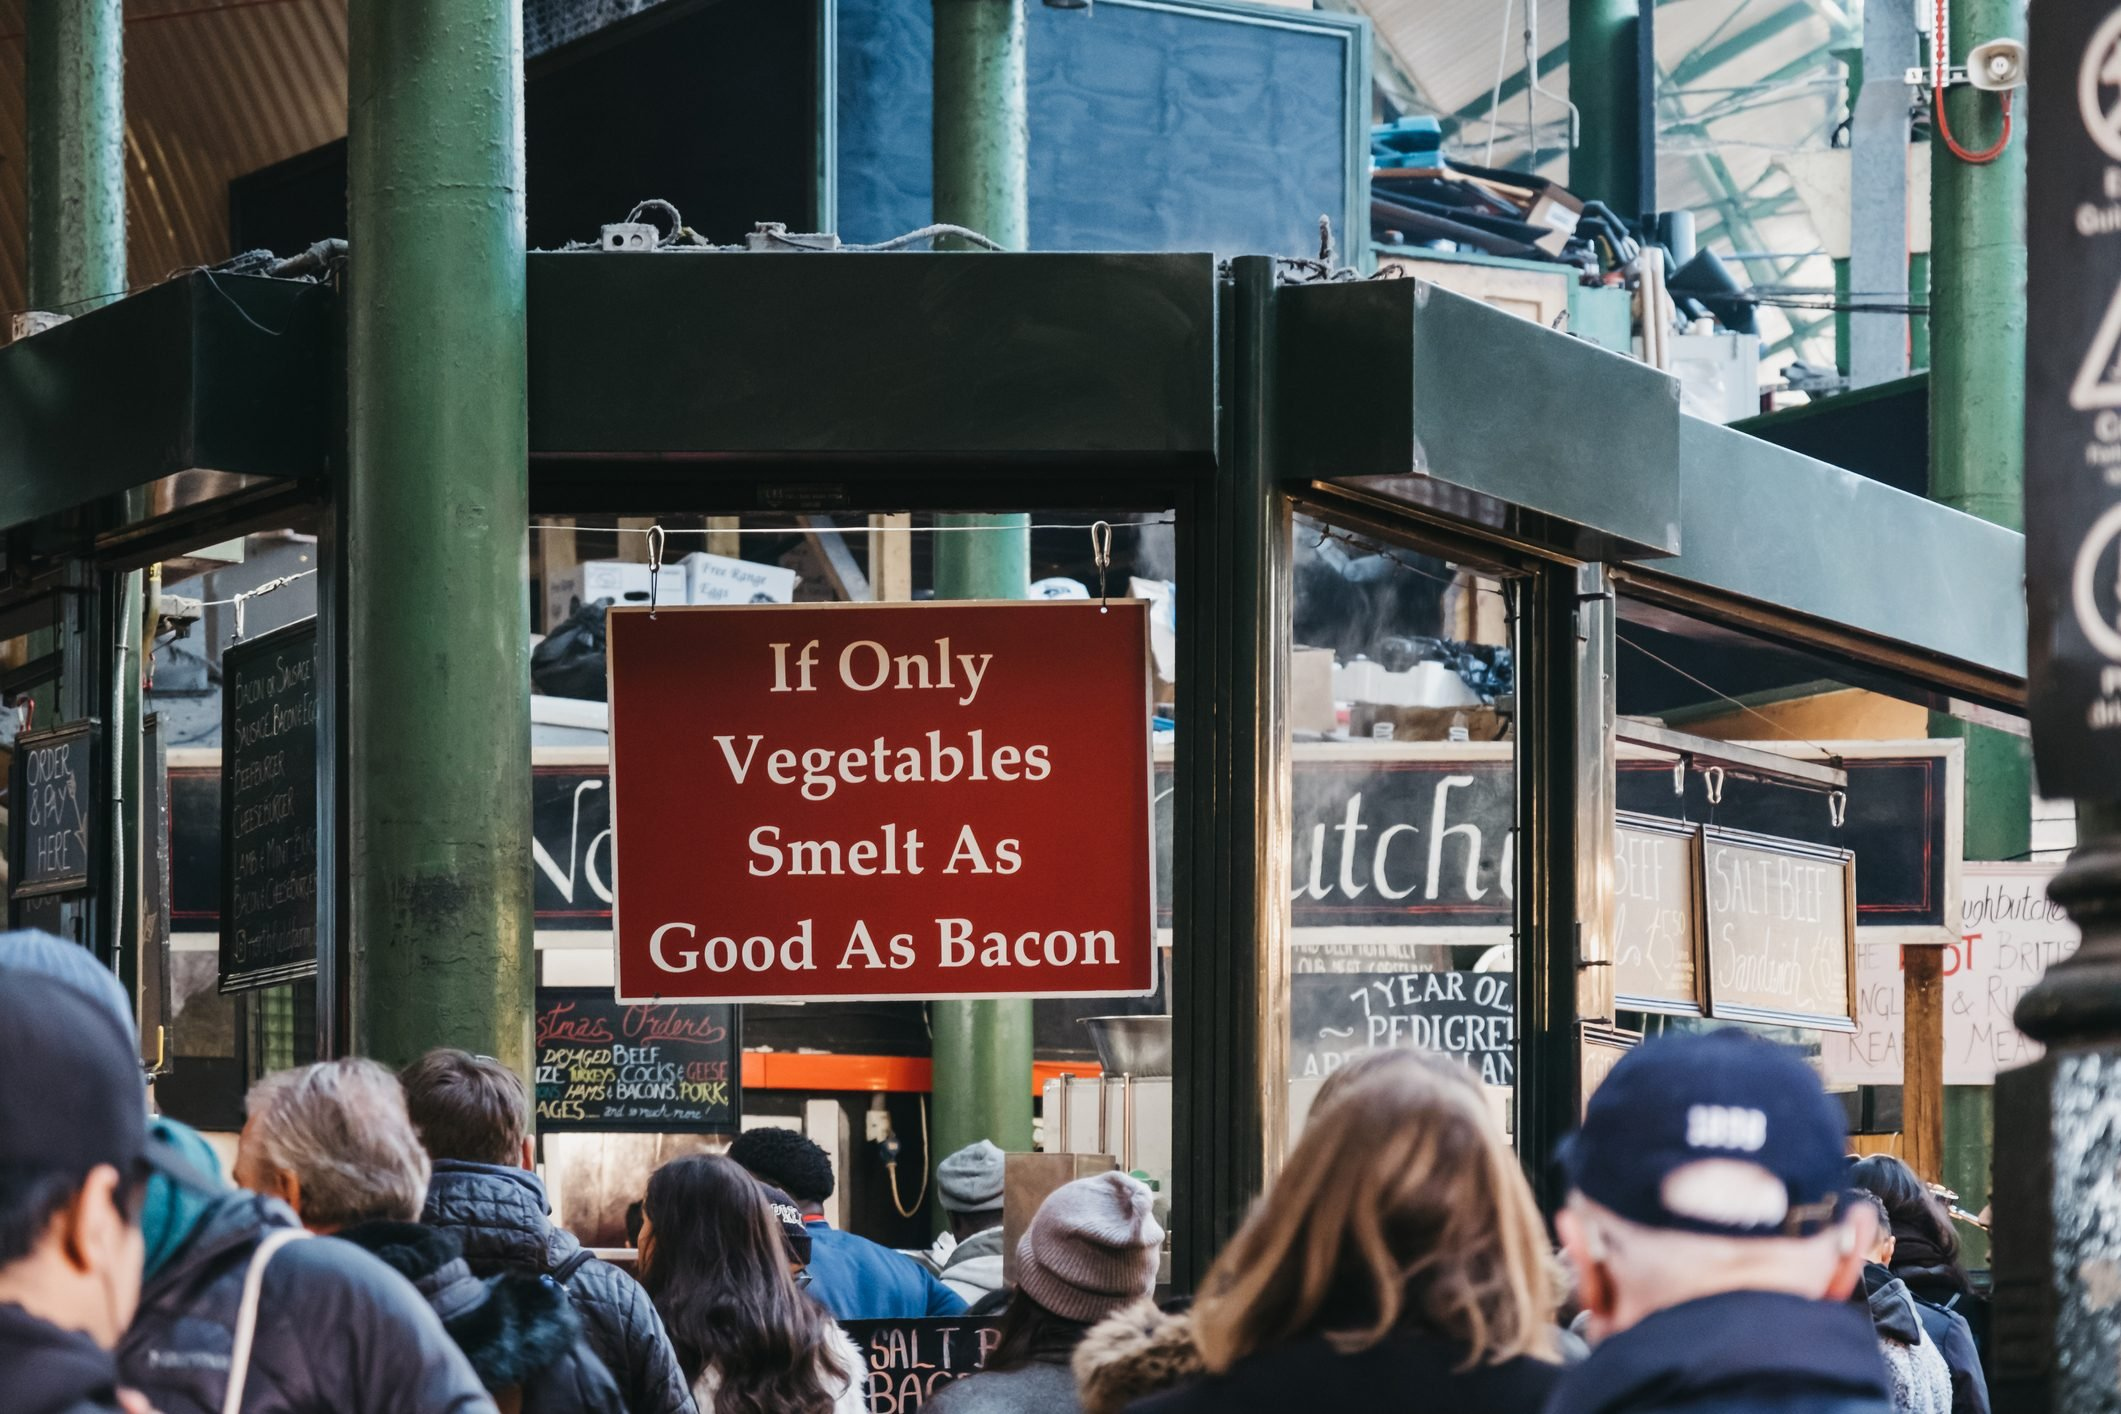 """""""If only vegetables smelt as good as bacon"""" sign at Northfield butchery stall in Borough Market, London, UK."""